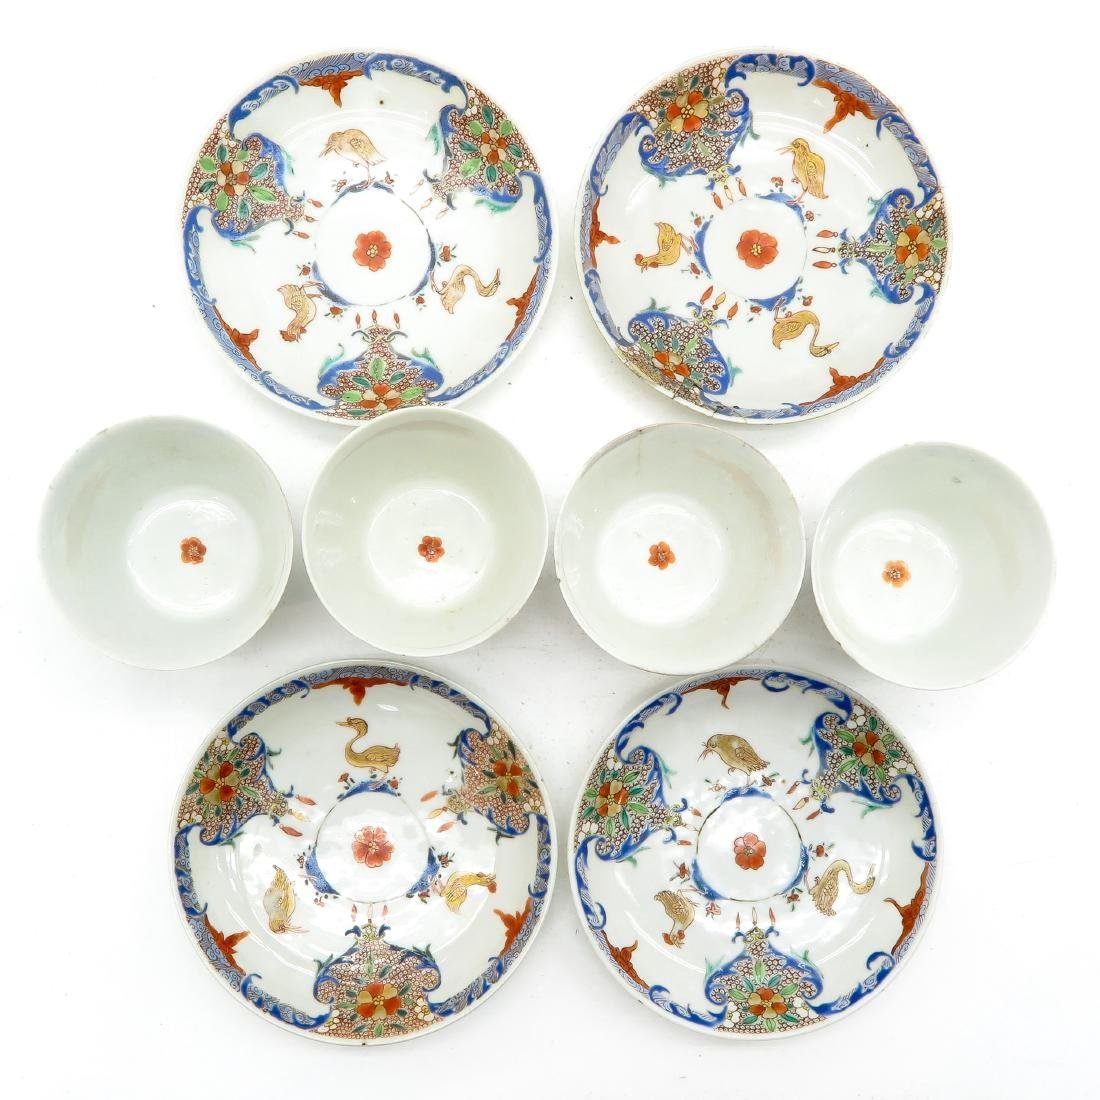 Lot of 4 Cups and Saucers - 4